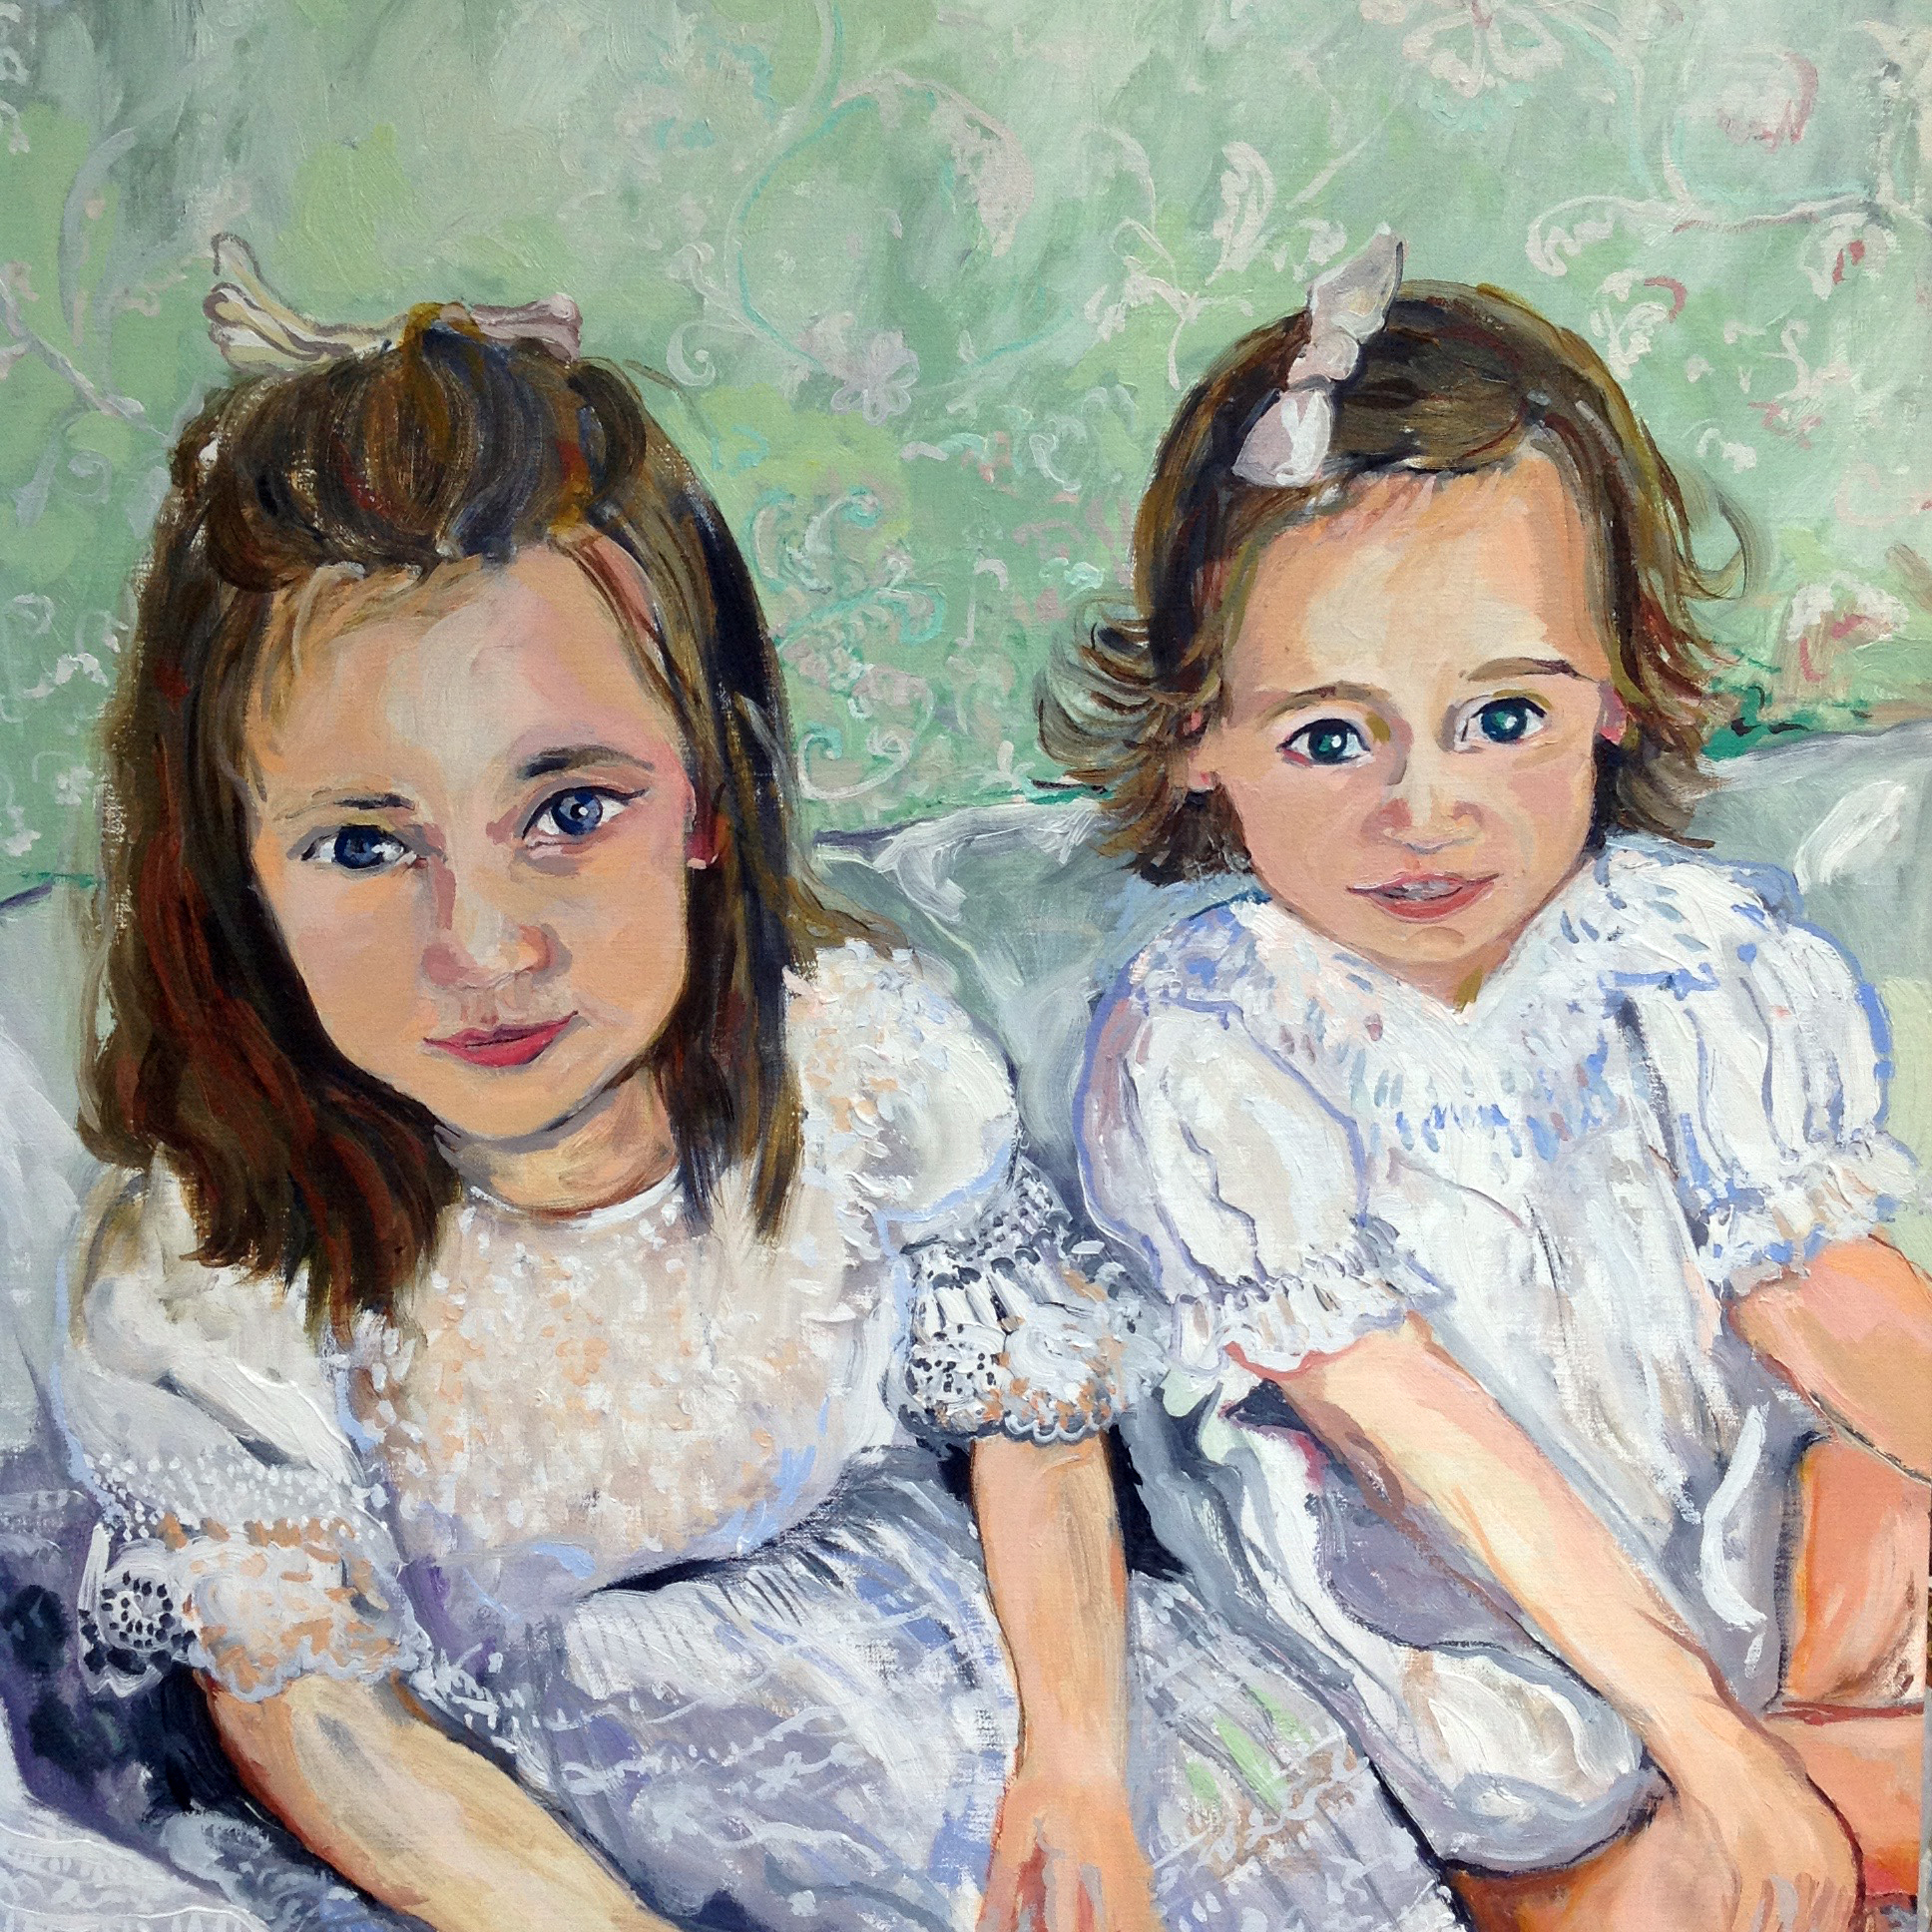 GIGIS girls oil on linen 2017.jpg